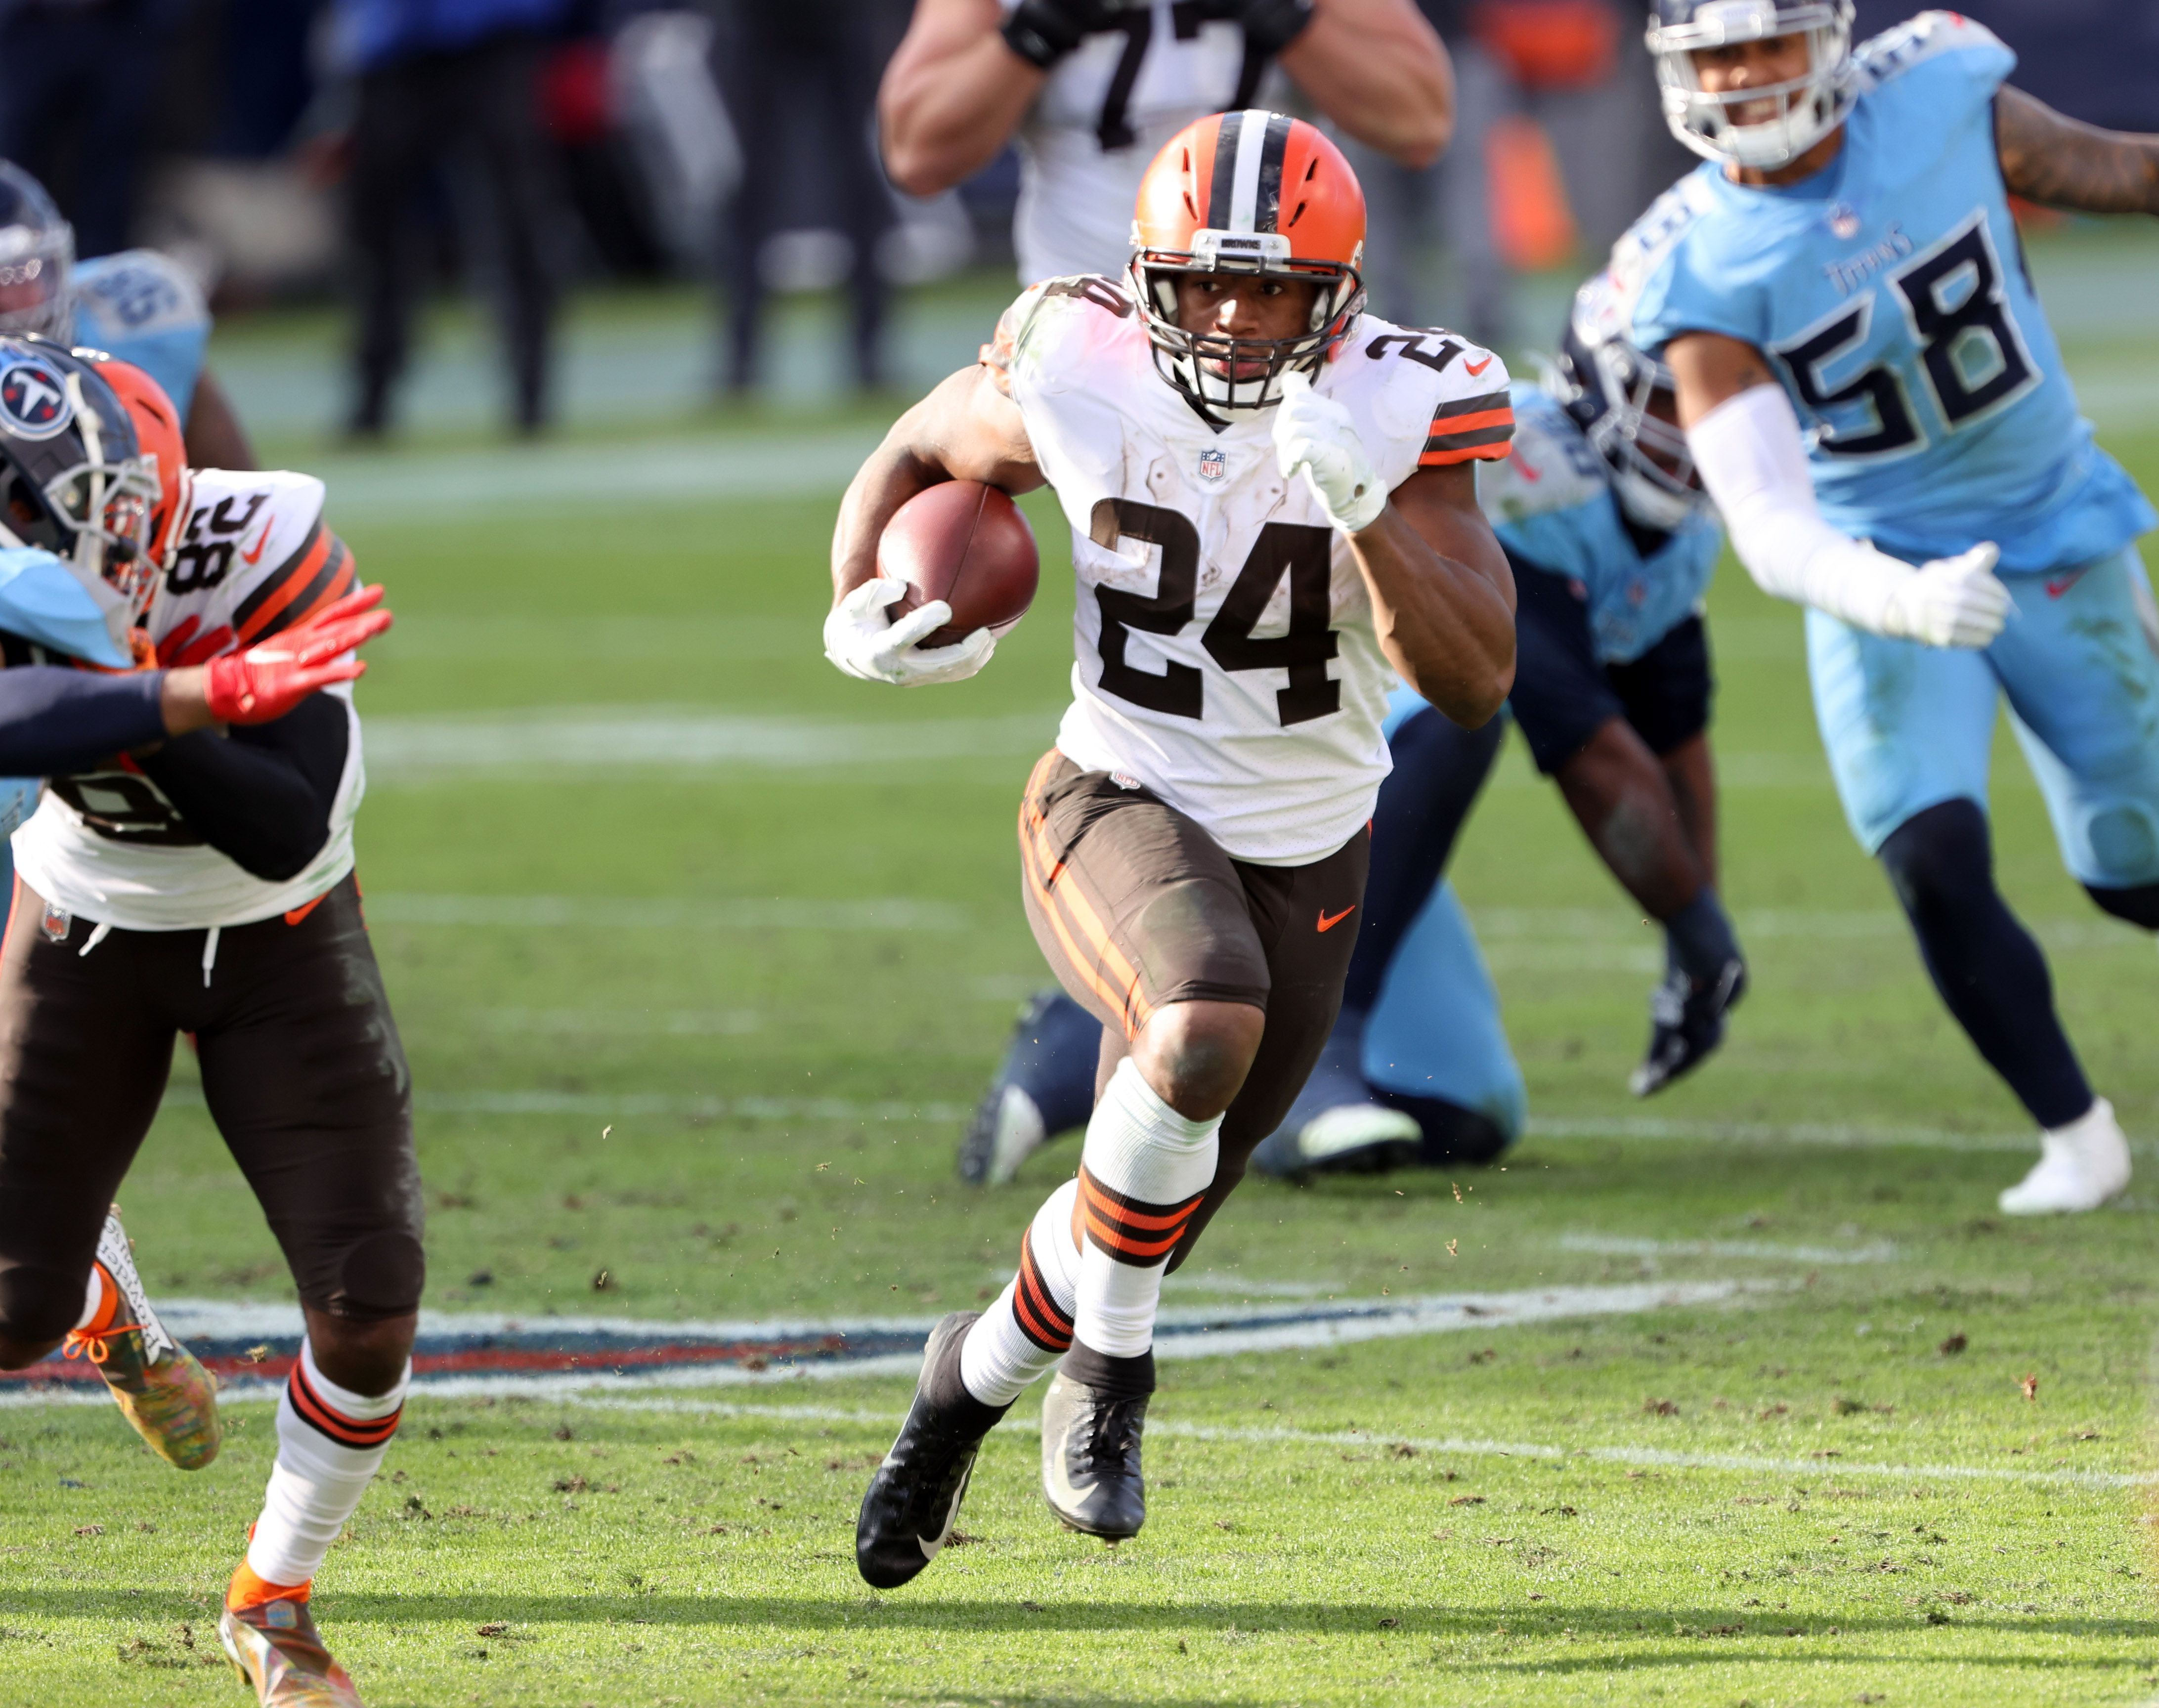 Cleveland Browns Vs New York Jets Free Live Stream 12 27 2020 Score Updates Odds Time Tv Channel How To Watch Online Oregonlive Com